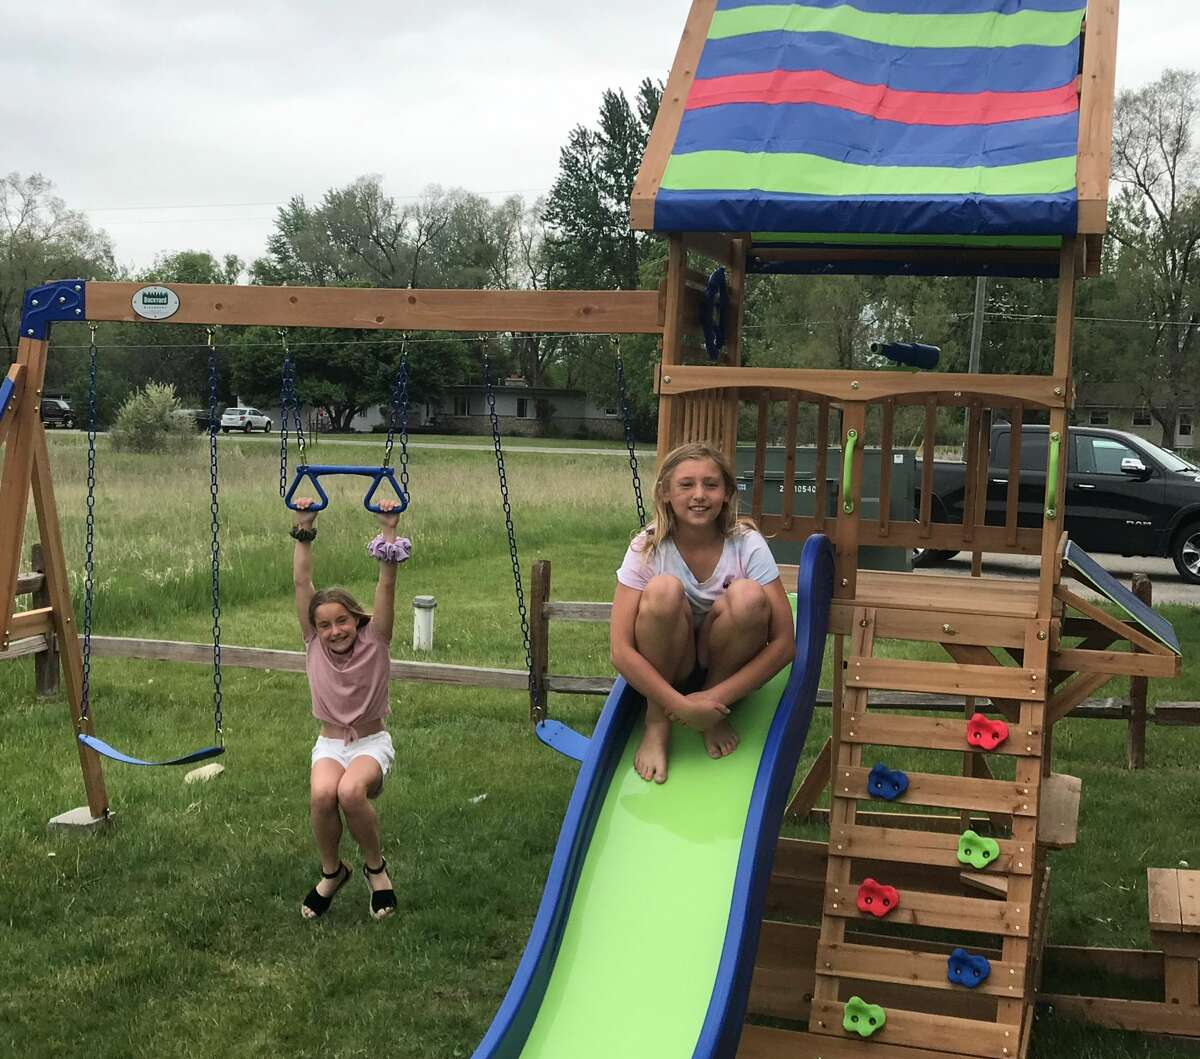 Lulu Church and Hailey Swingle enjoy the new playset at Midland Eagles Aerie 2110 they helped fund and construct.